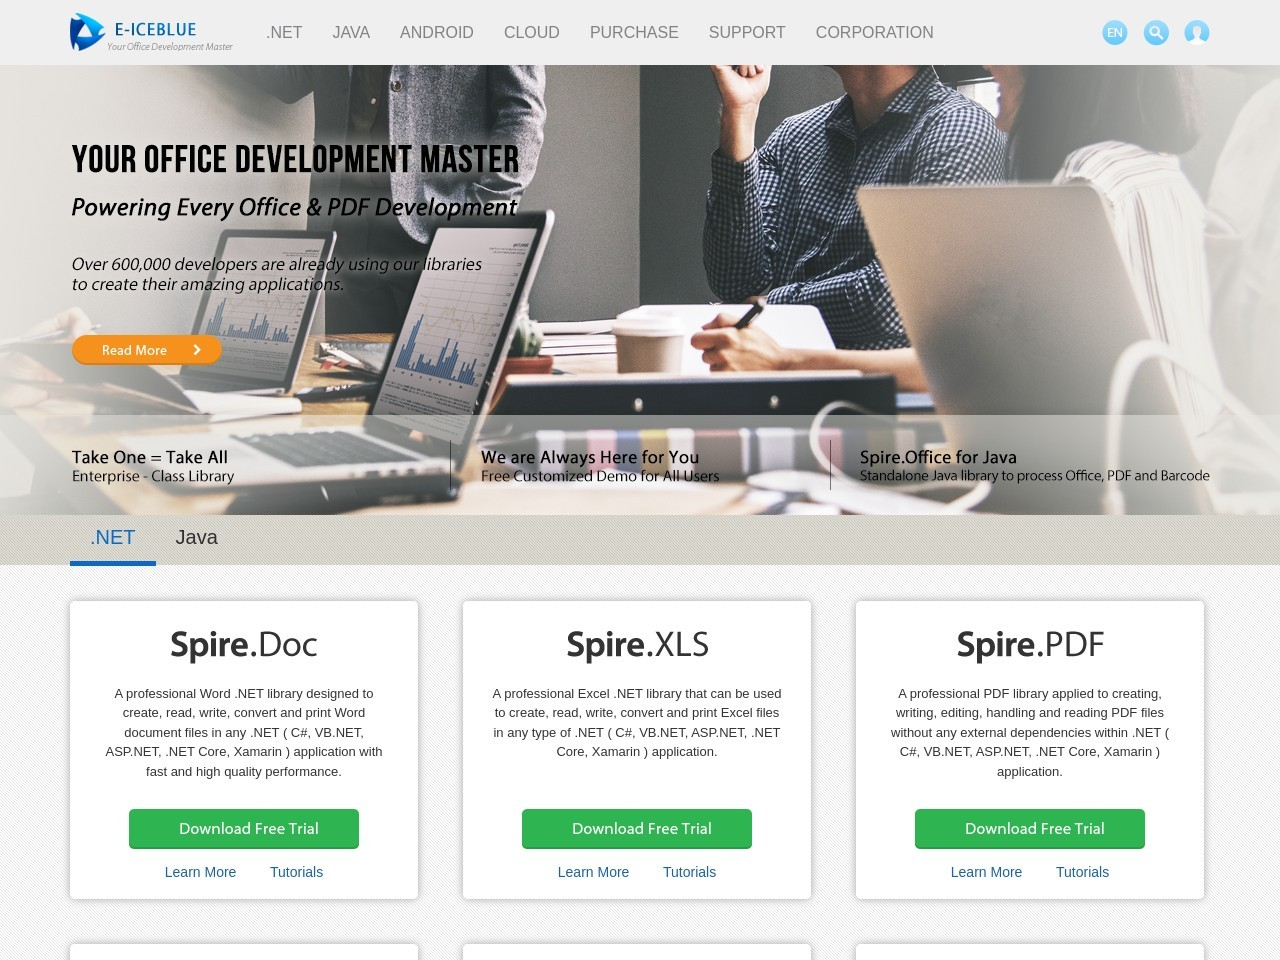 Spire.Office for WPF Site Enterprise Subscription Voucher - Exclusive